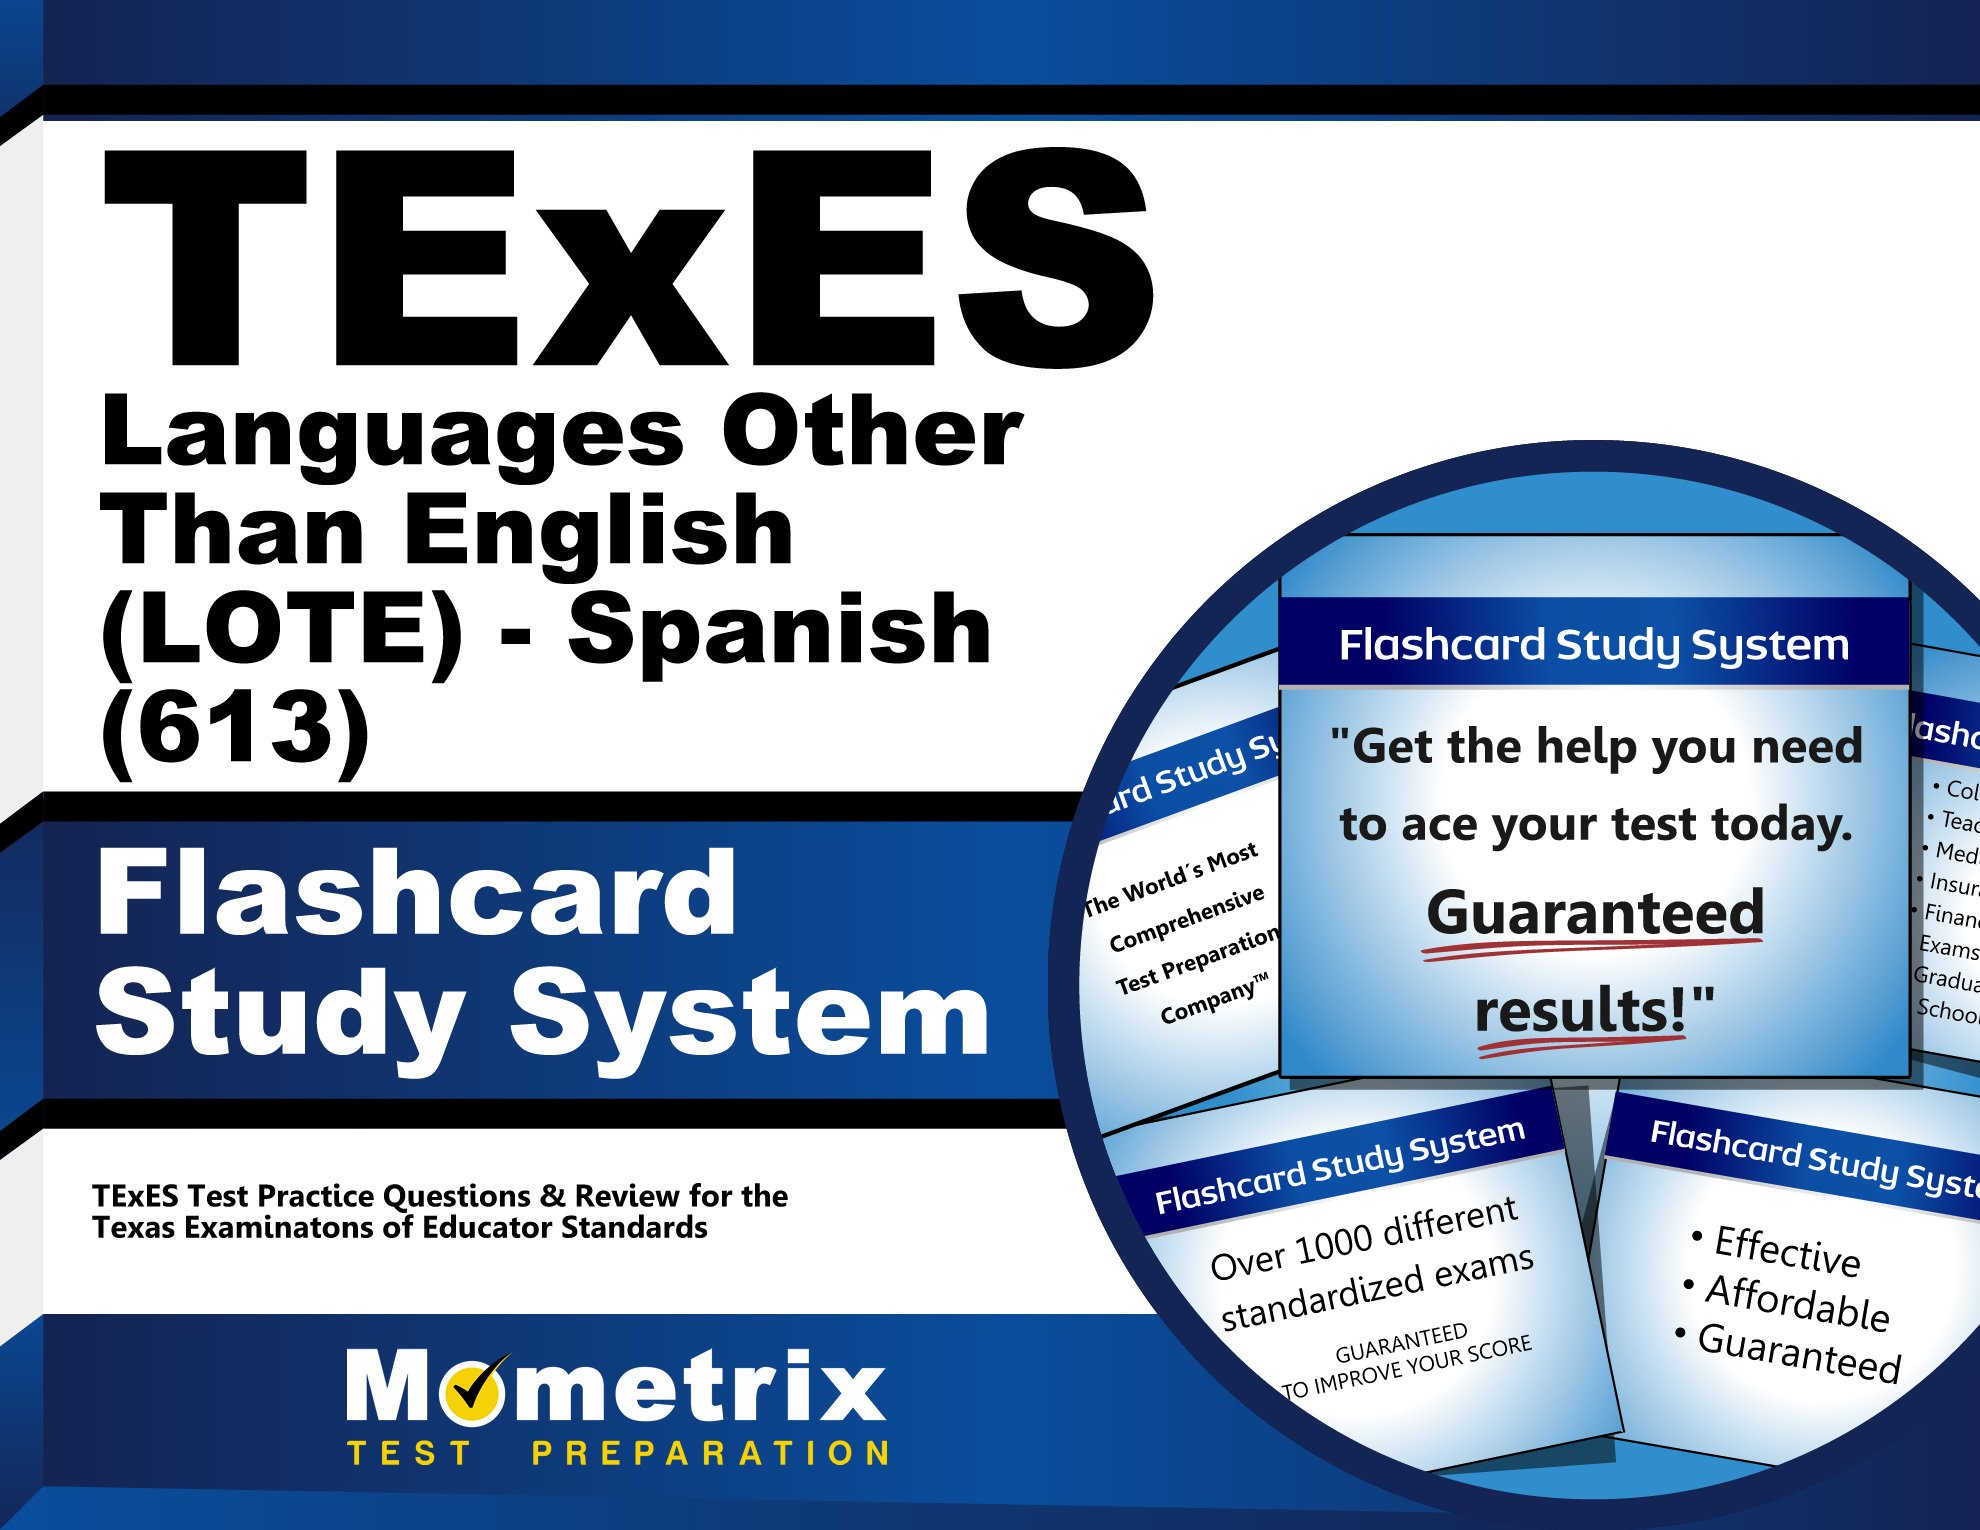 TExES Languages Other Than English (LOTE) - Spanish (613) Flashcard Study System: TExES Test Practice Questions & Review for the Texas Examinations of Educator Standards (Cards)